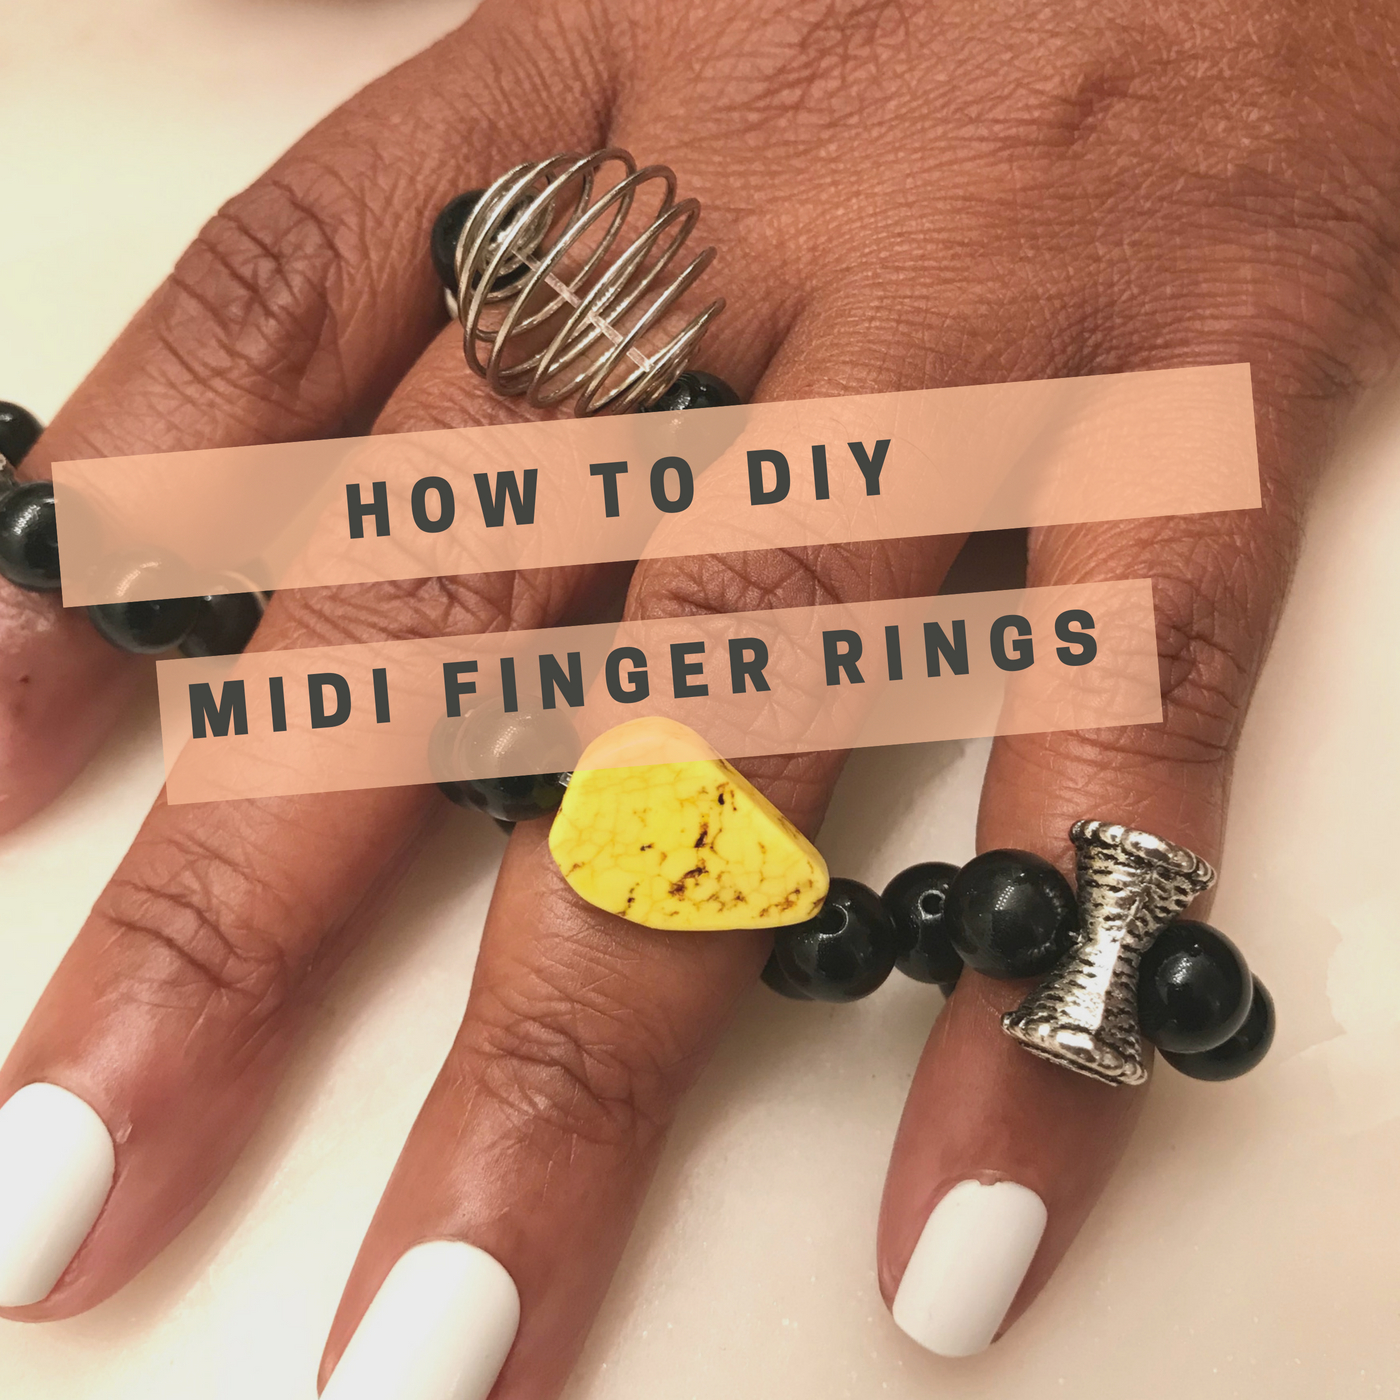 Image: Hand wearing midi finger rings